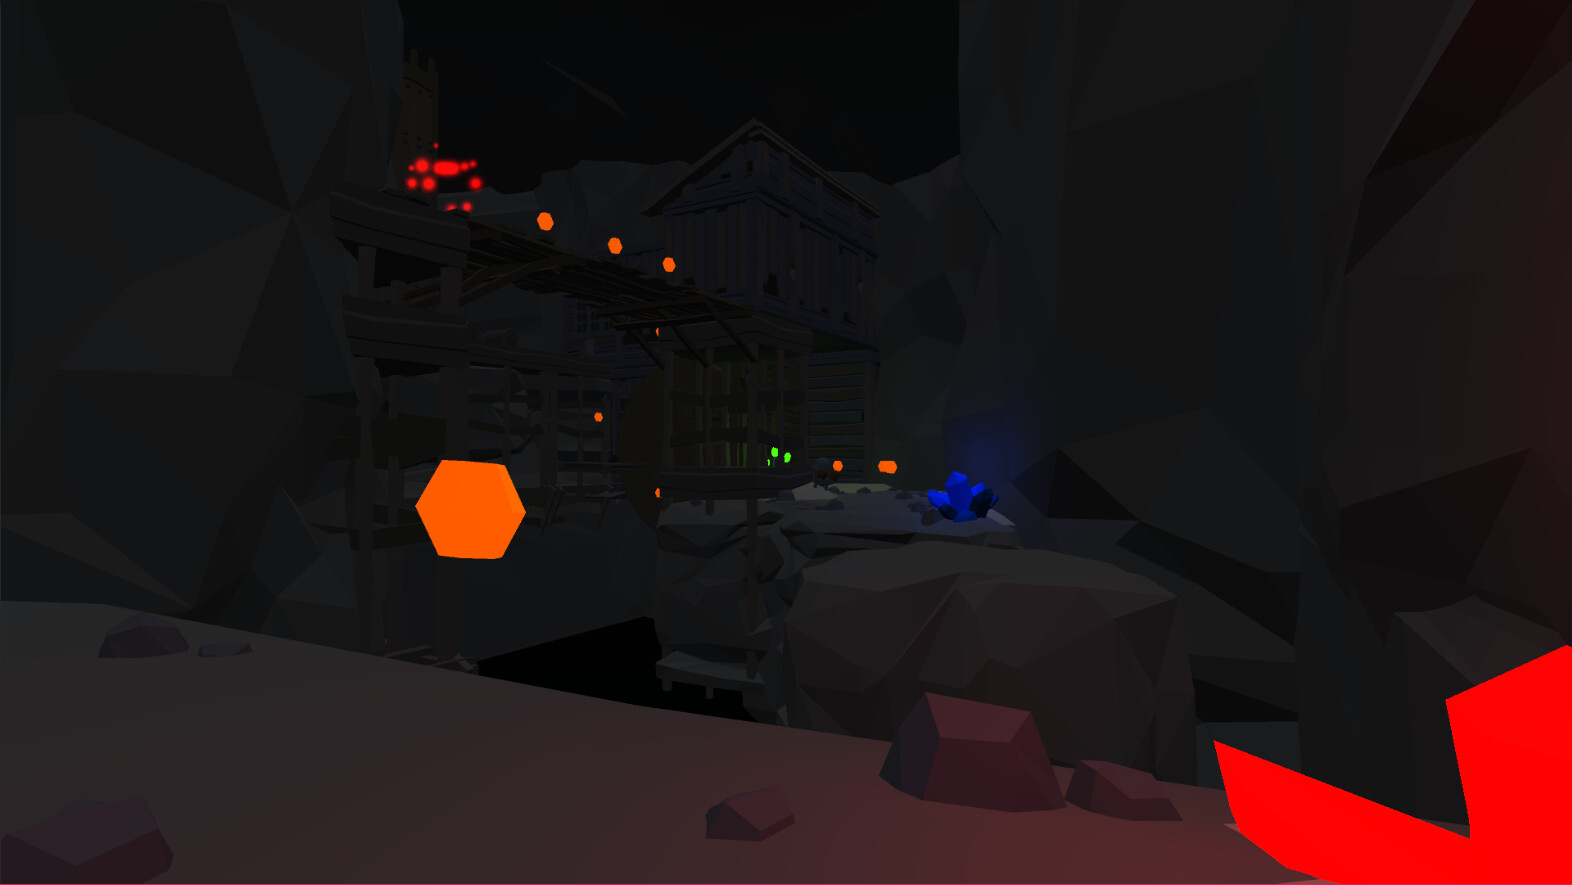 A tunnel in the mines section that the player needs to move through to reach the upper section.